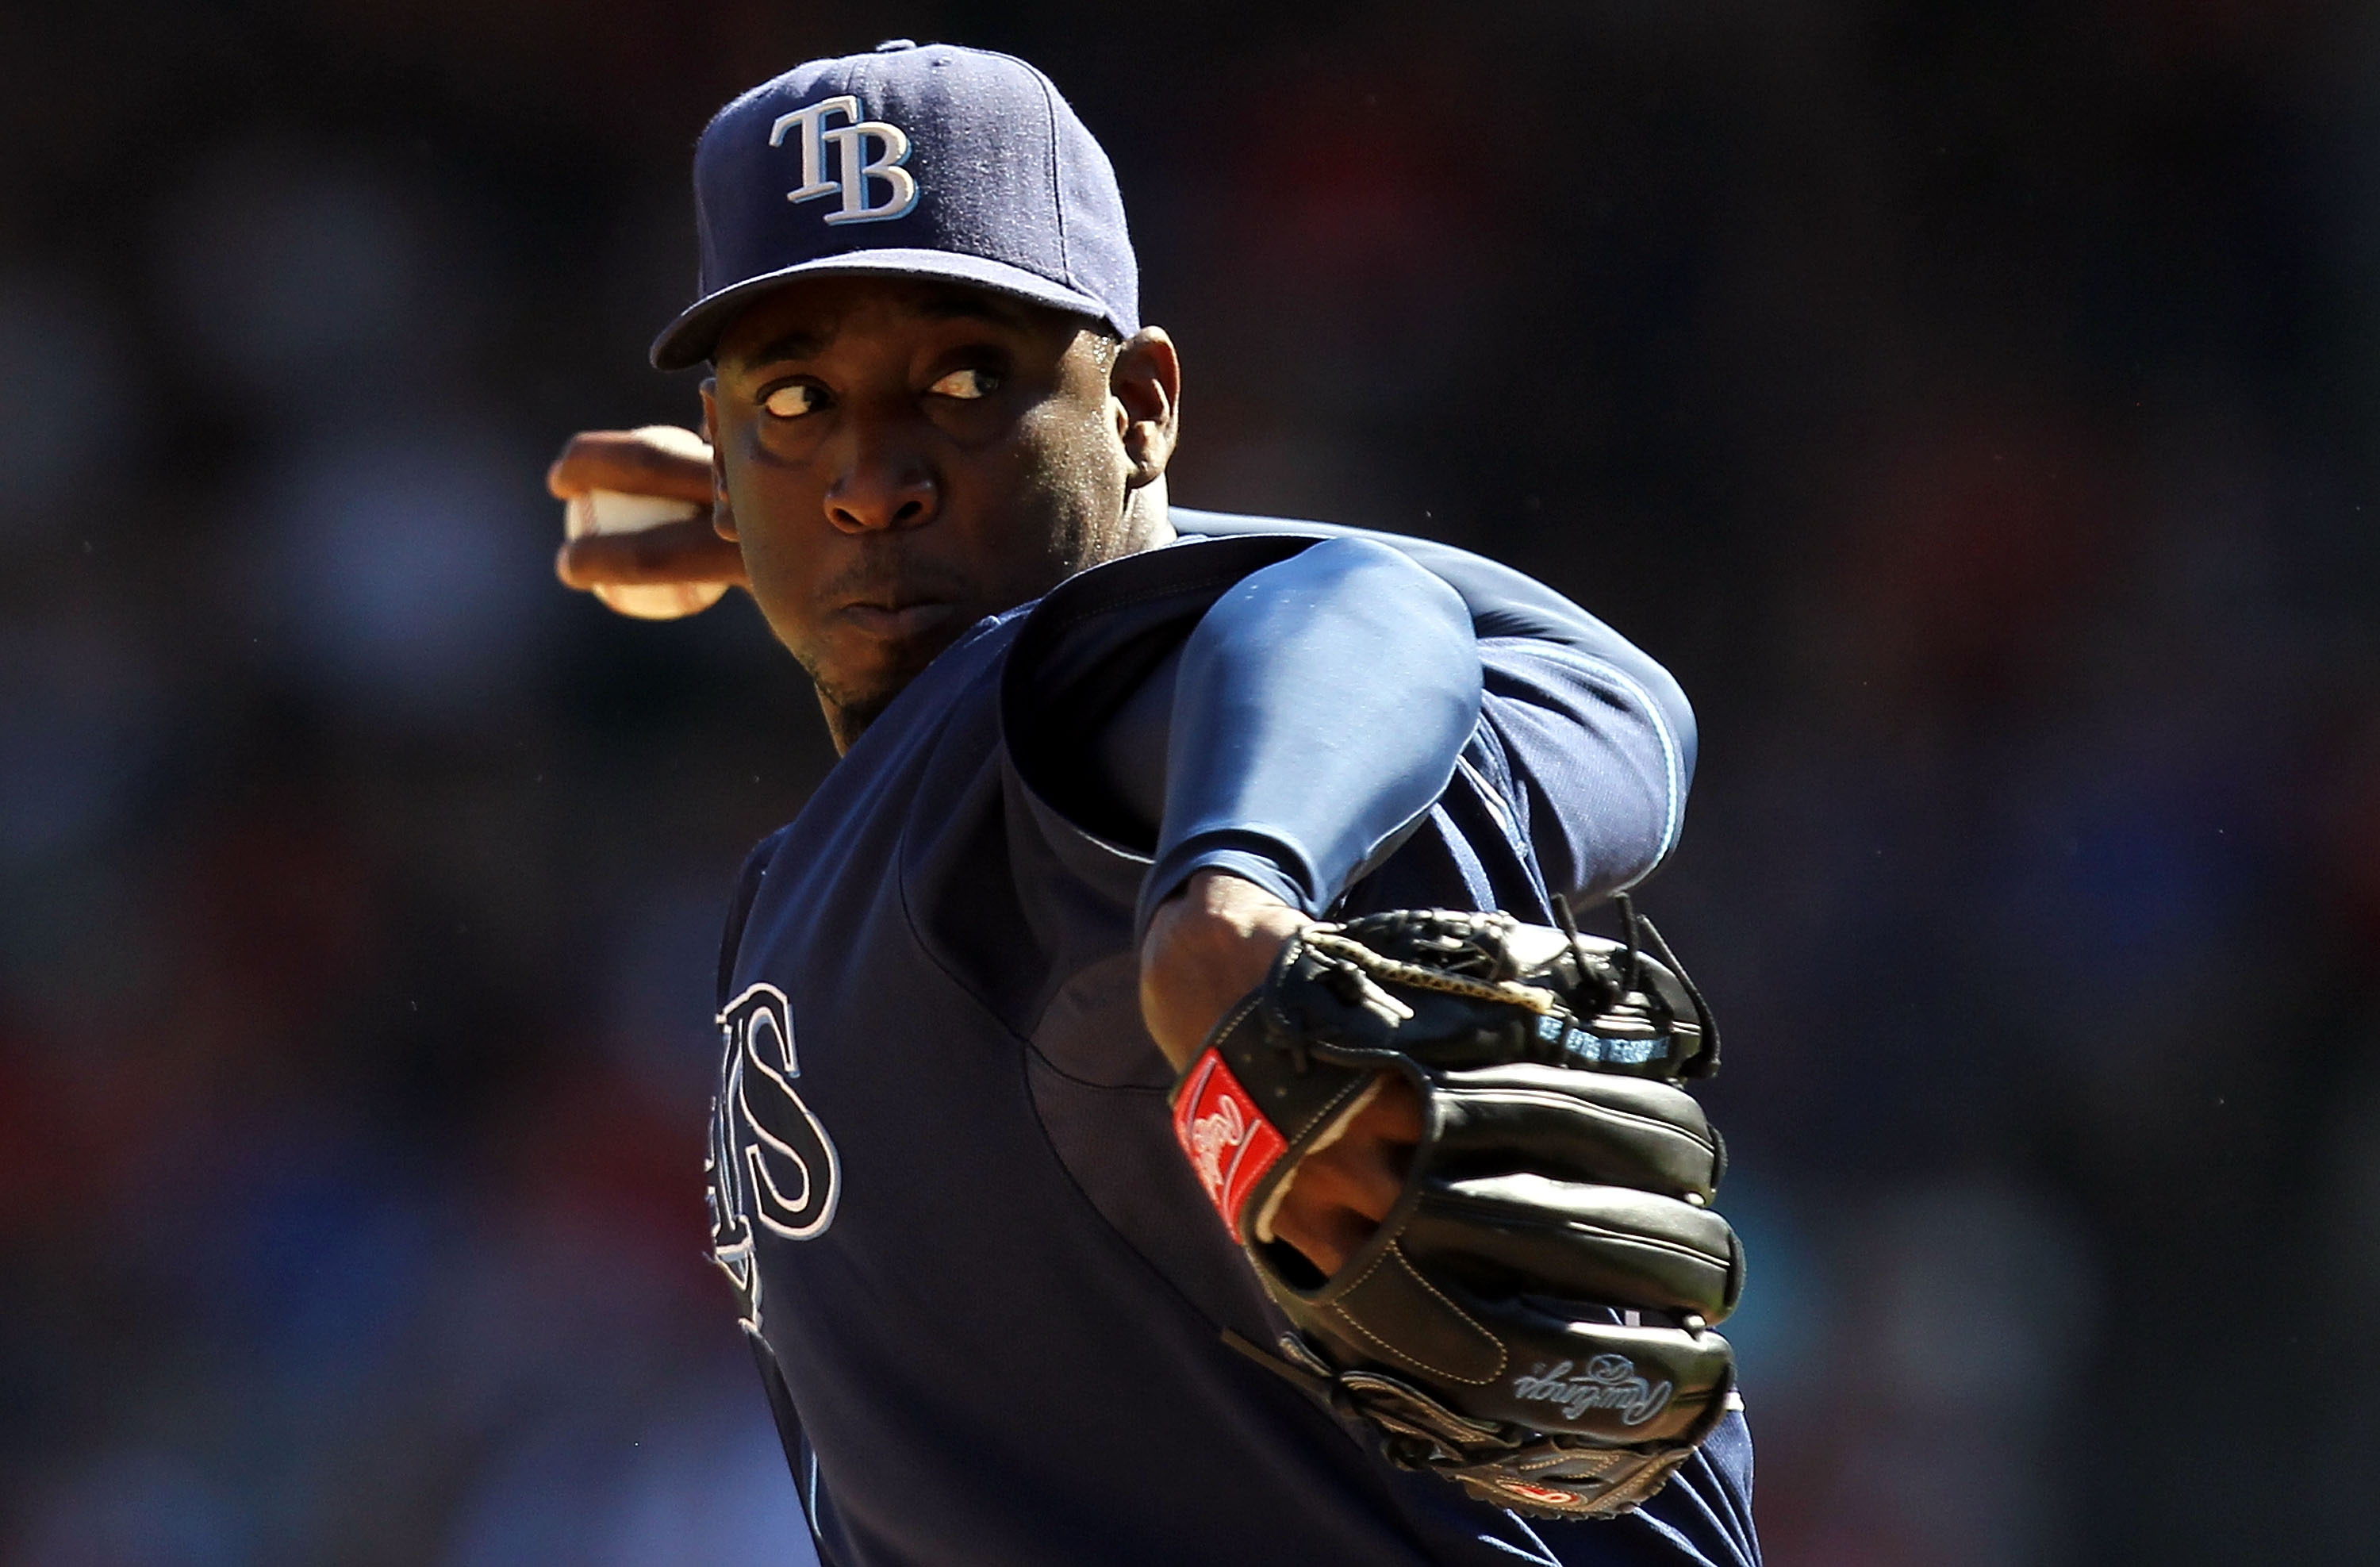 ARLINGTON, TX - OCTOBER 10:  Pitcher Rafael Soriano #29 of the Tampa Bay Rays throws against the Texas Rangers during game 4 of the ALDS at Rangers Ballpark in Arlington on October 10, 2010 in Arlington, Texas.  (Photo by Ronald Martinez/Getty Images)